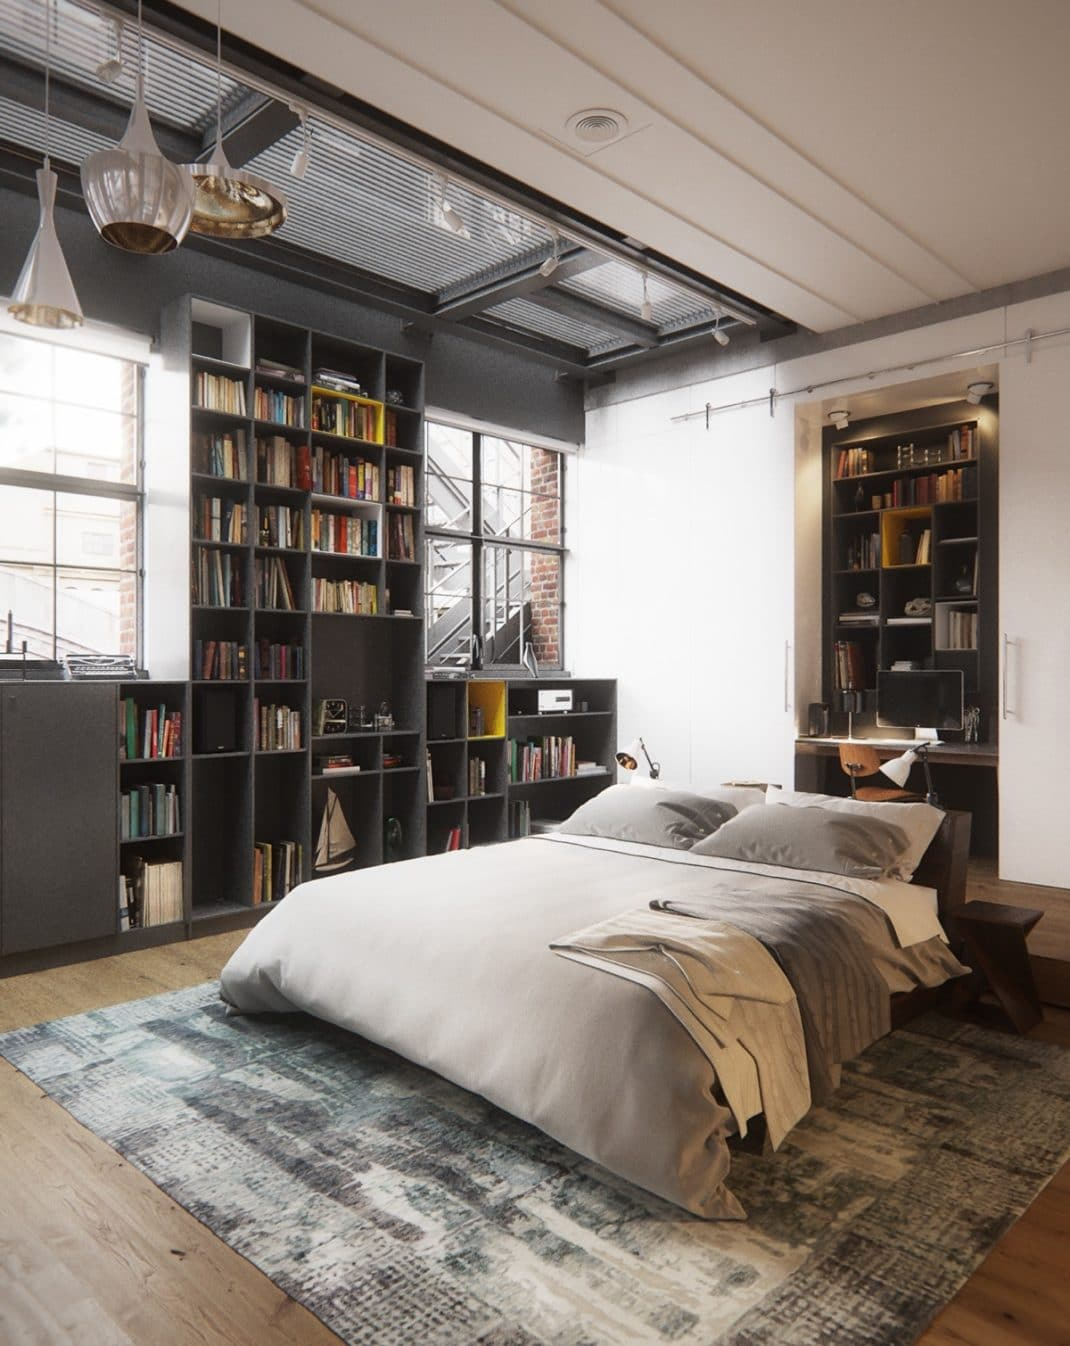 chambre la d coration industrielle mon guide ultime. Black Bedroom Furniture Sets. Home Design Ideas